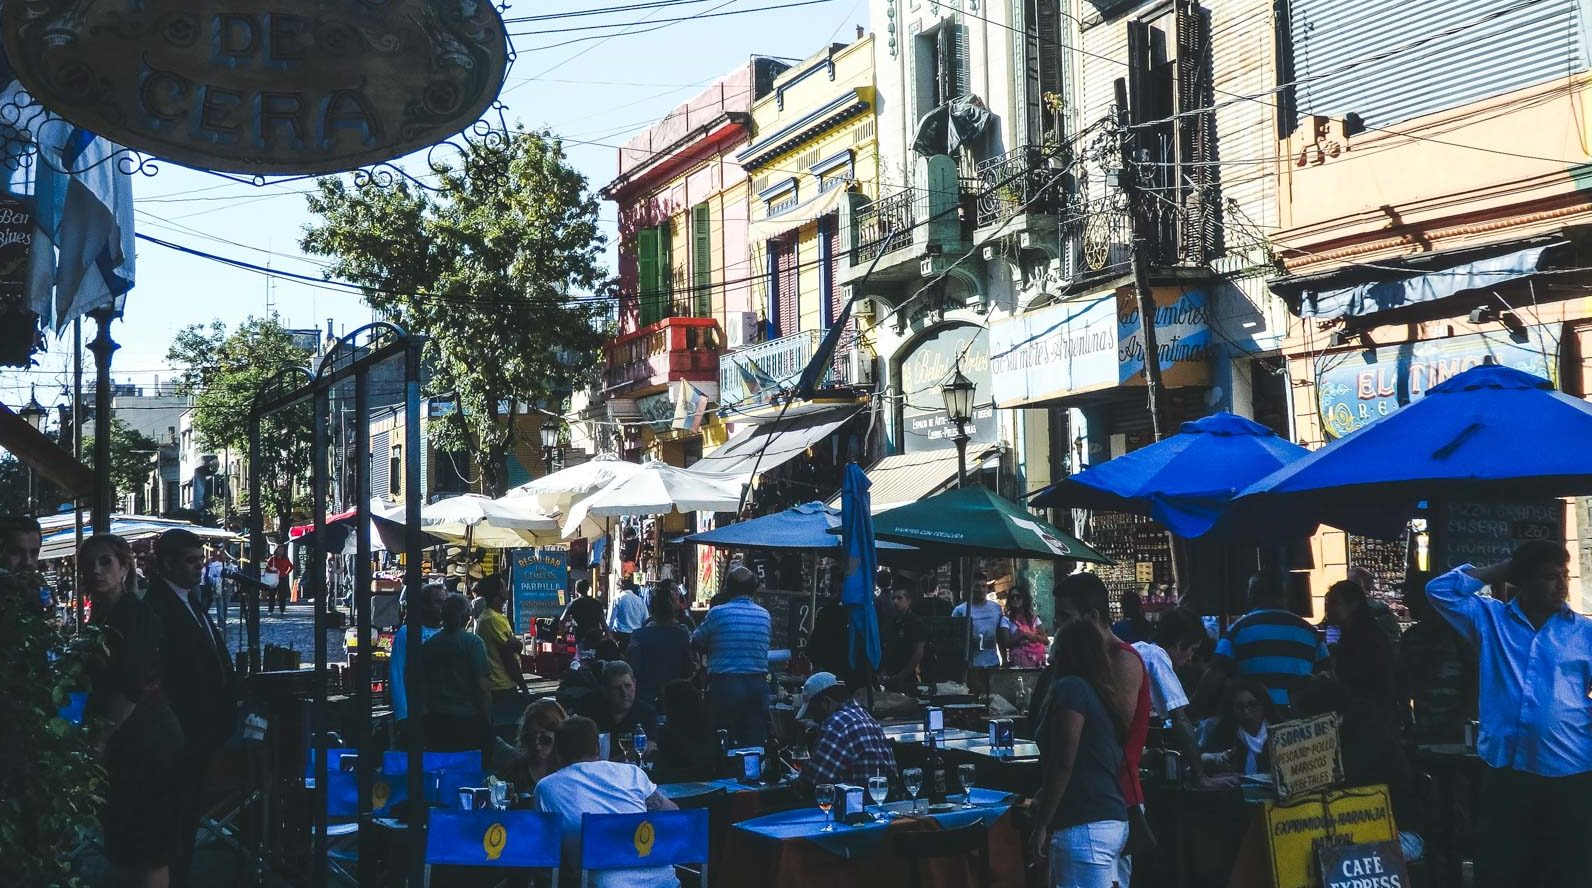 Here's why after travelling Buenos Aries I want to live there. A view of the The busy streets in down town Bocas with people eating and wandering